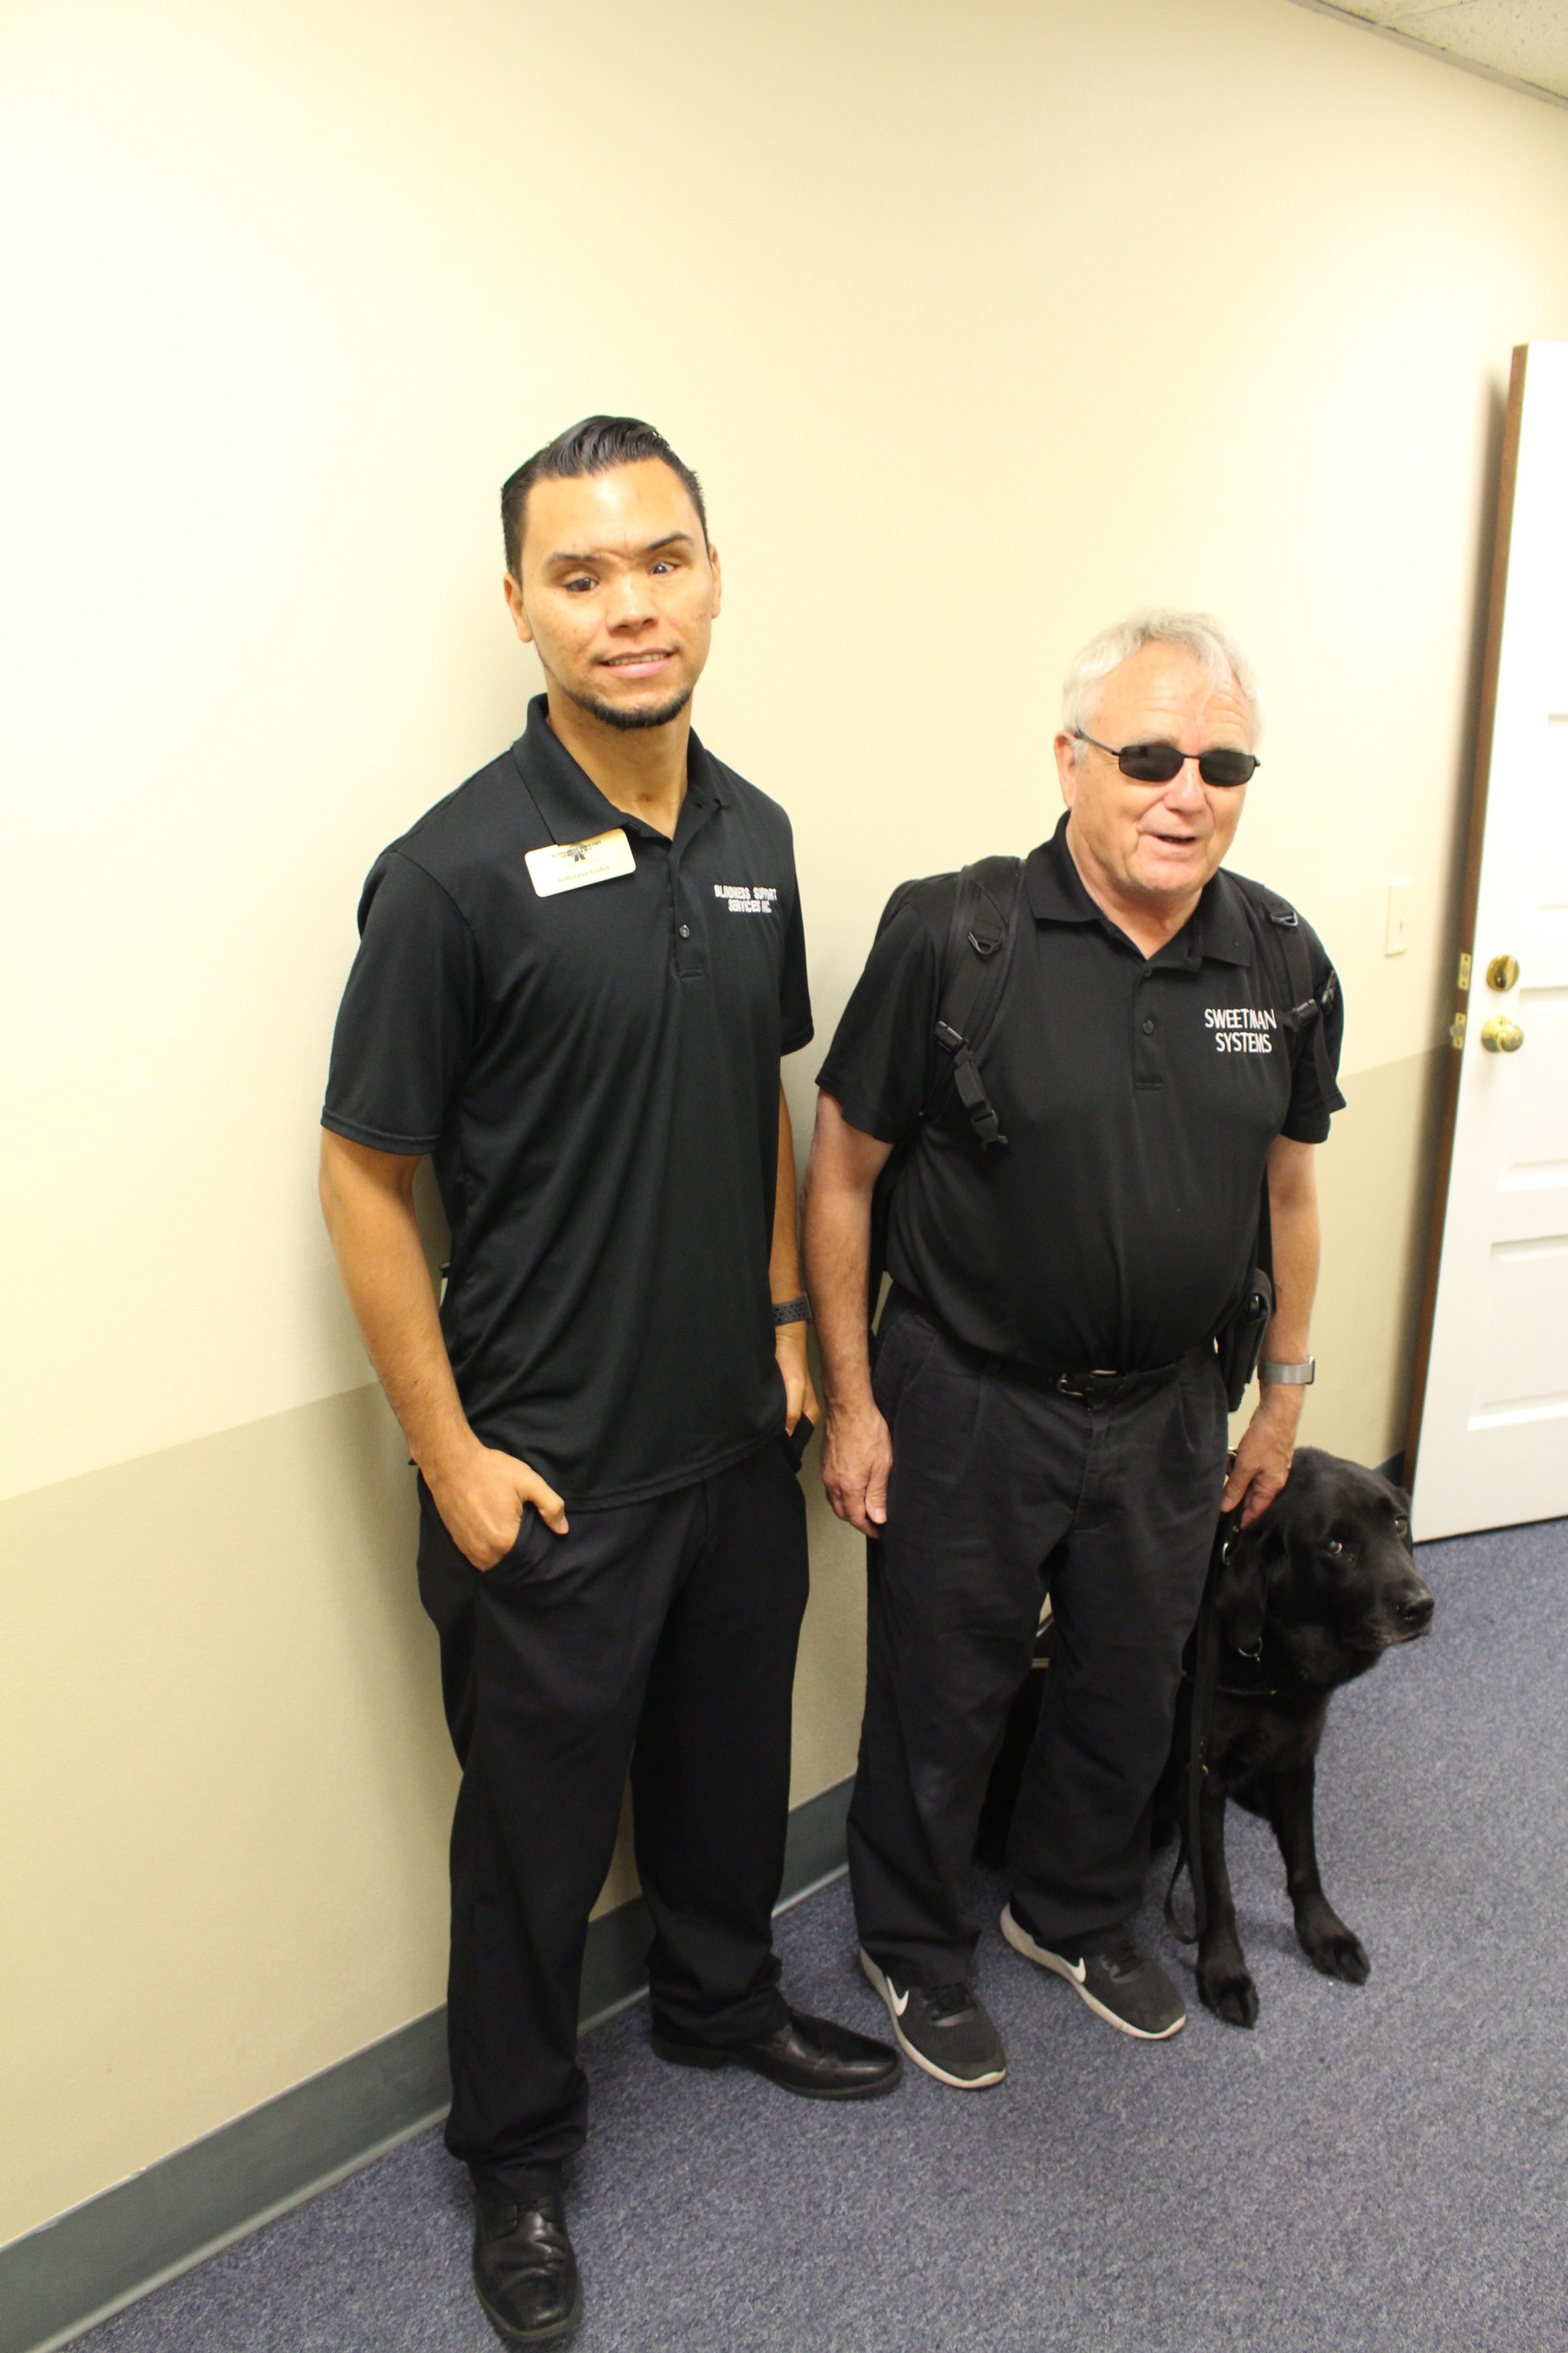 Feliciano, Assistive technology specialist, and Bob Sweetman standing side by side